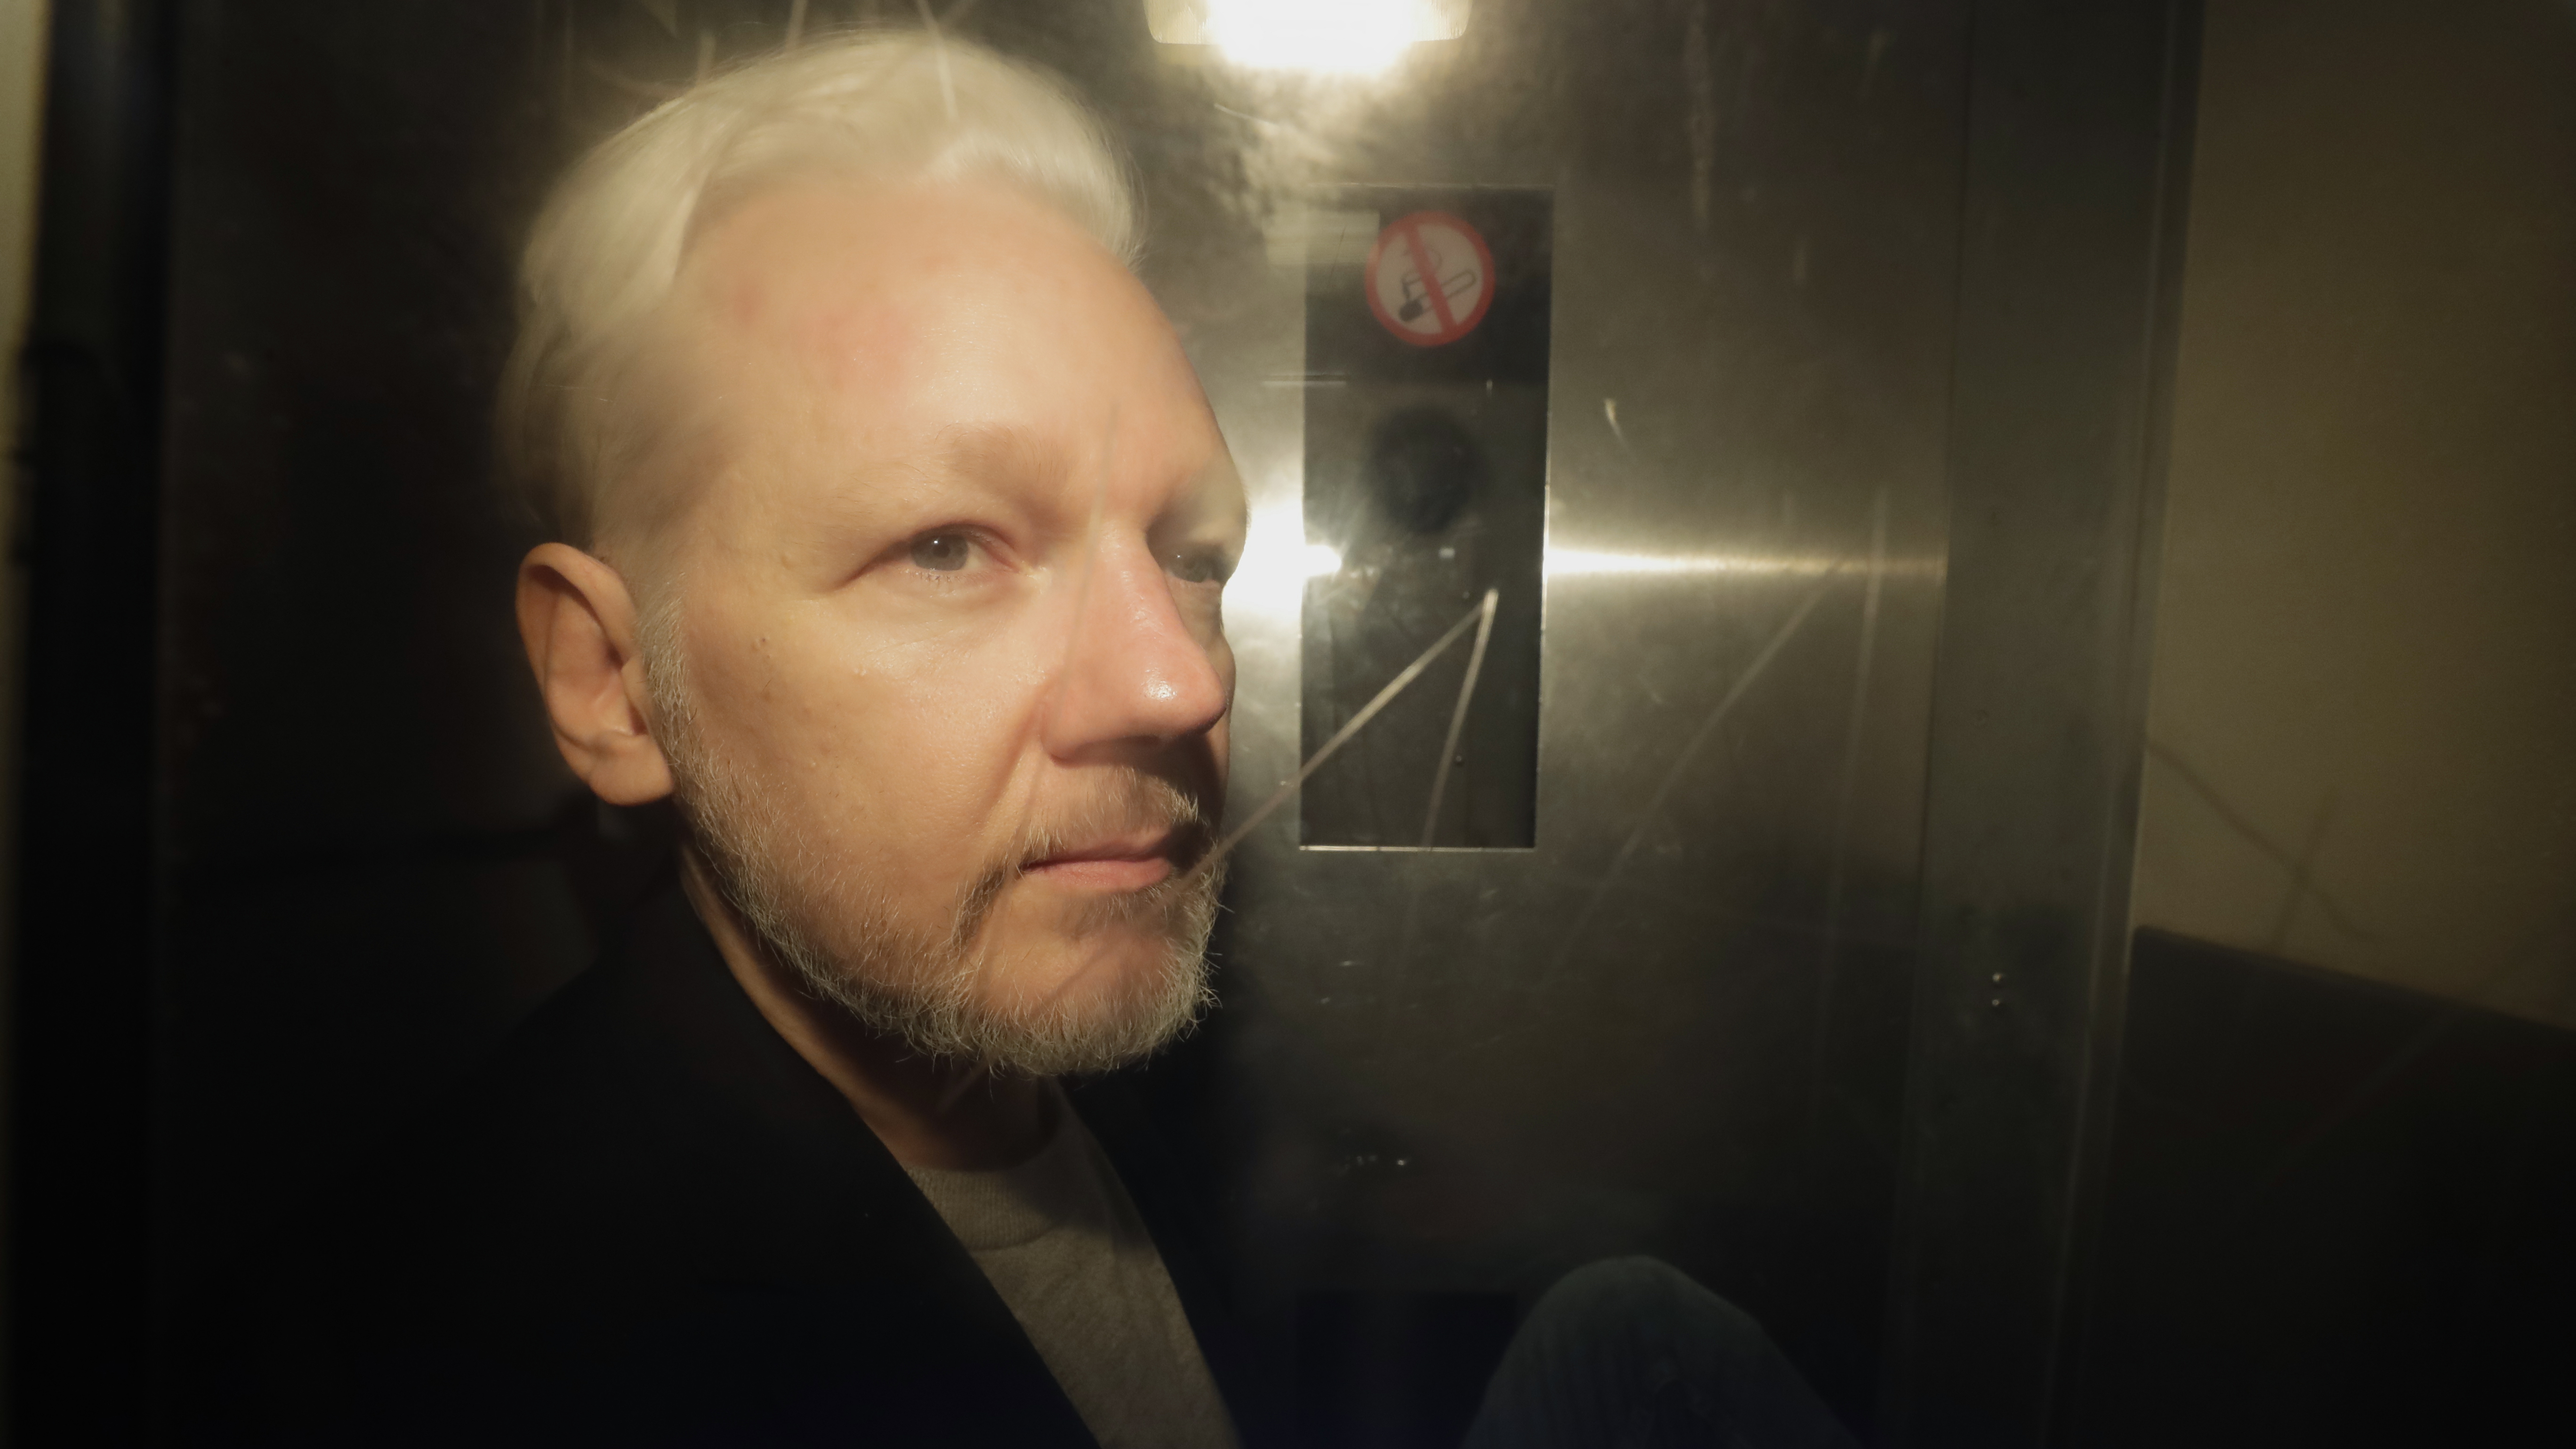 U.S. Brings New Charges Against Julian Assange In War Logs, State Cables Case